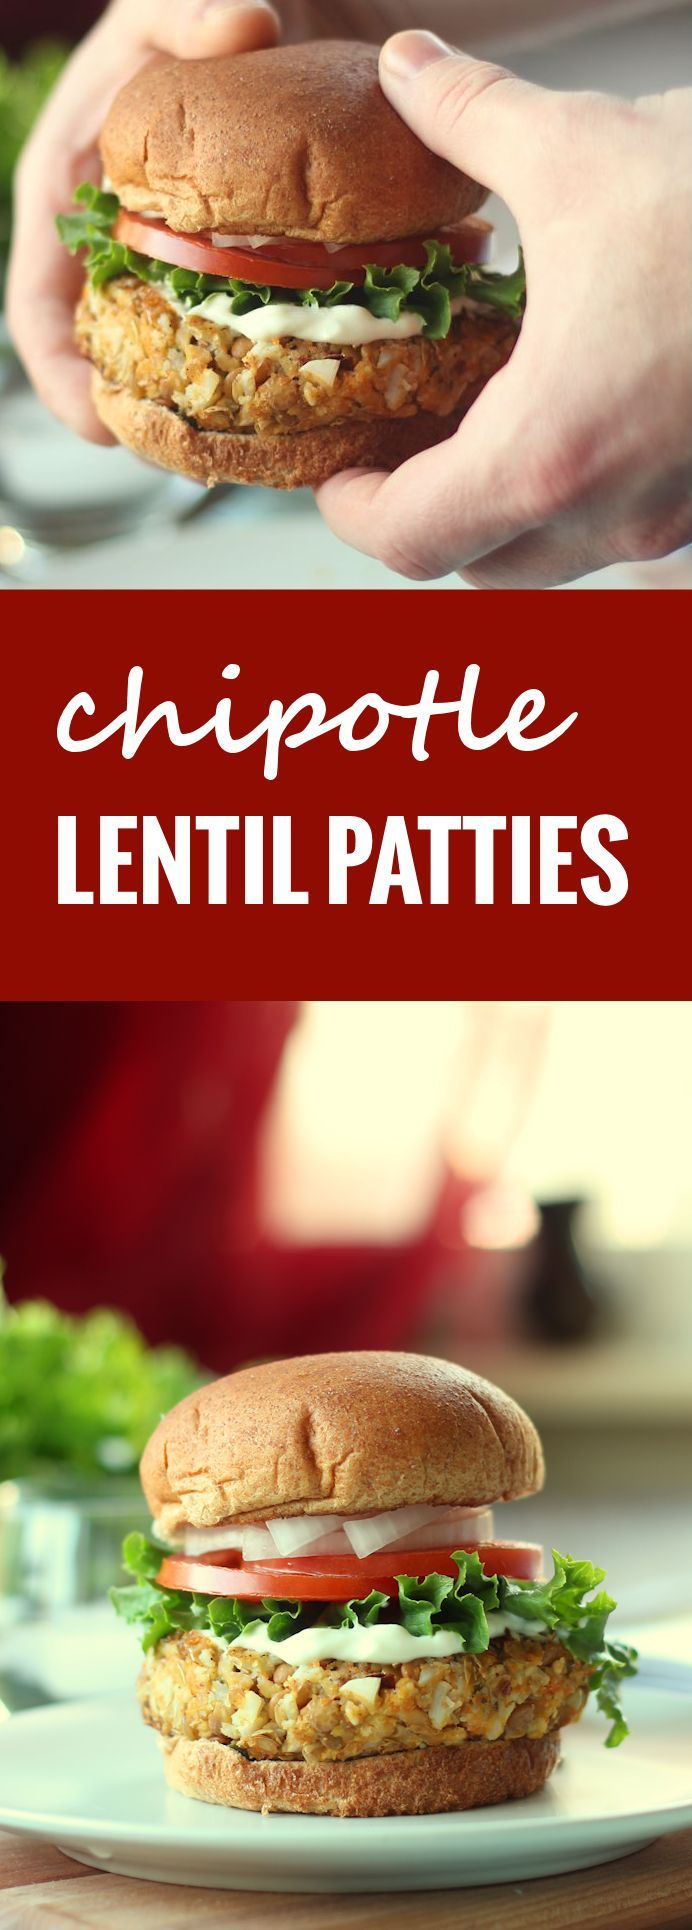 These hearty lentil patties from the Make Ahead Vegan Cookbook are seasoned up with spicy, smoky chipotle peppers.